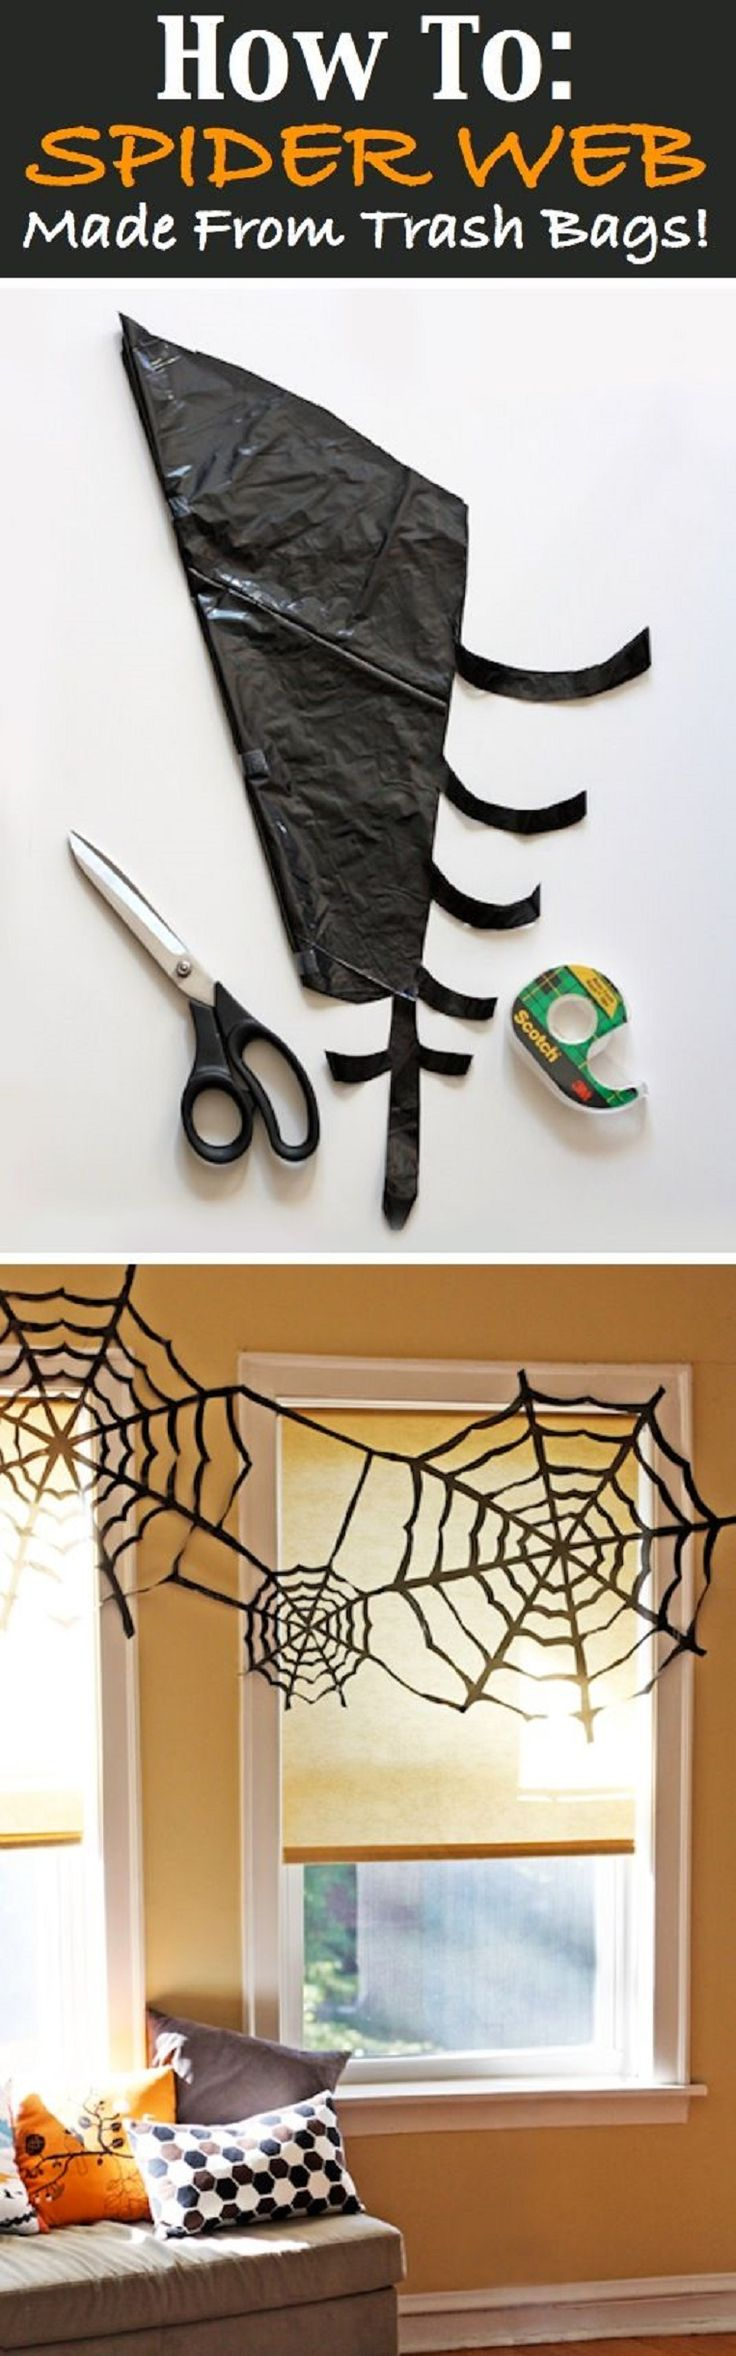 389 best Halloween images on Pinterest